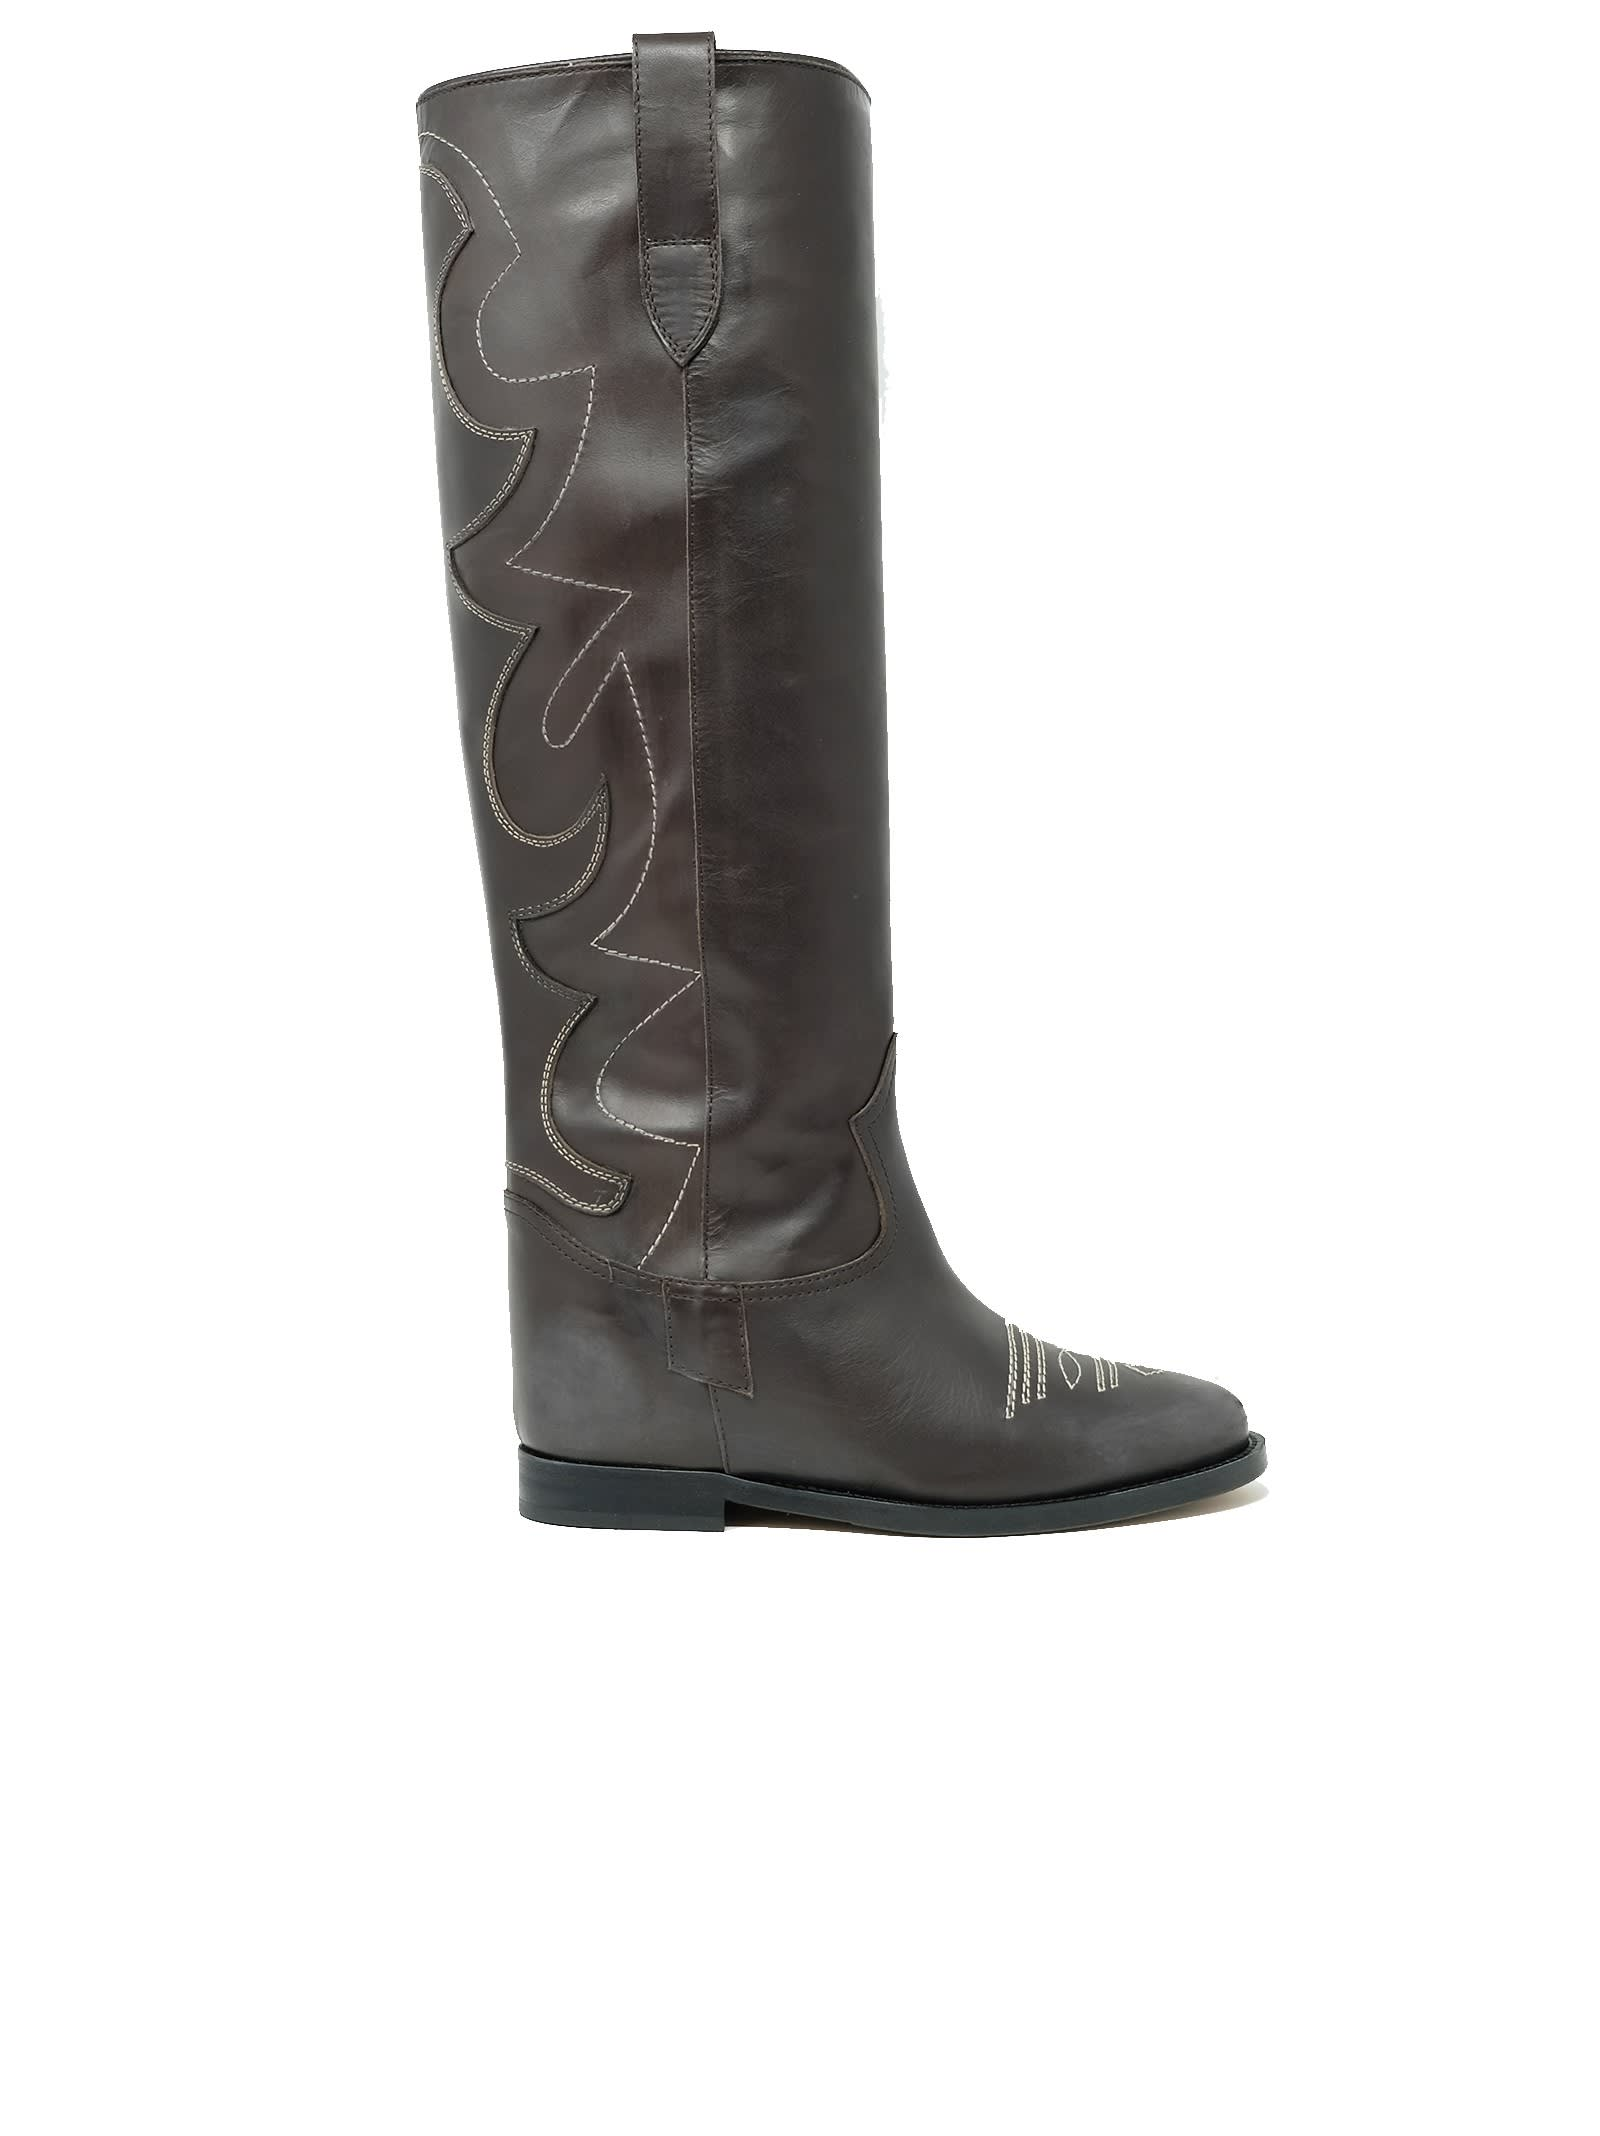 Via Roma 15 Brown Leather Boots